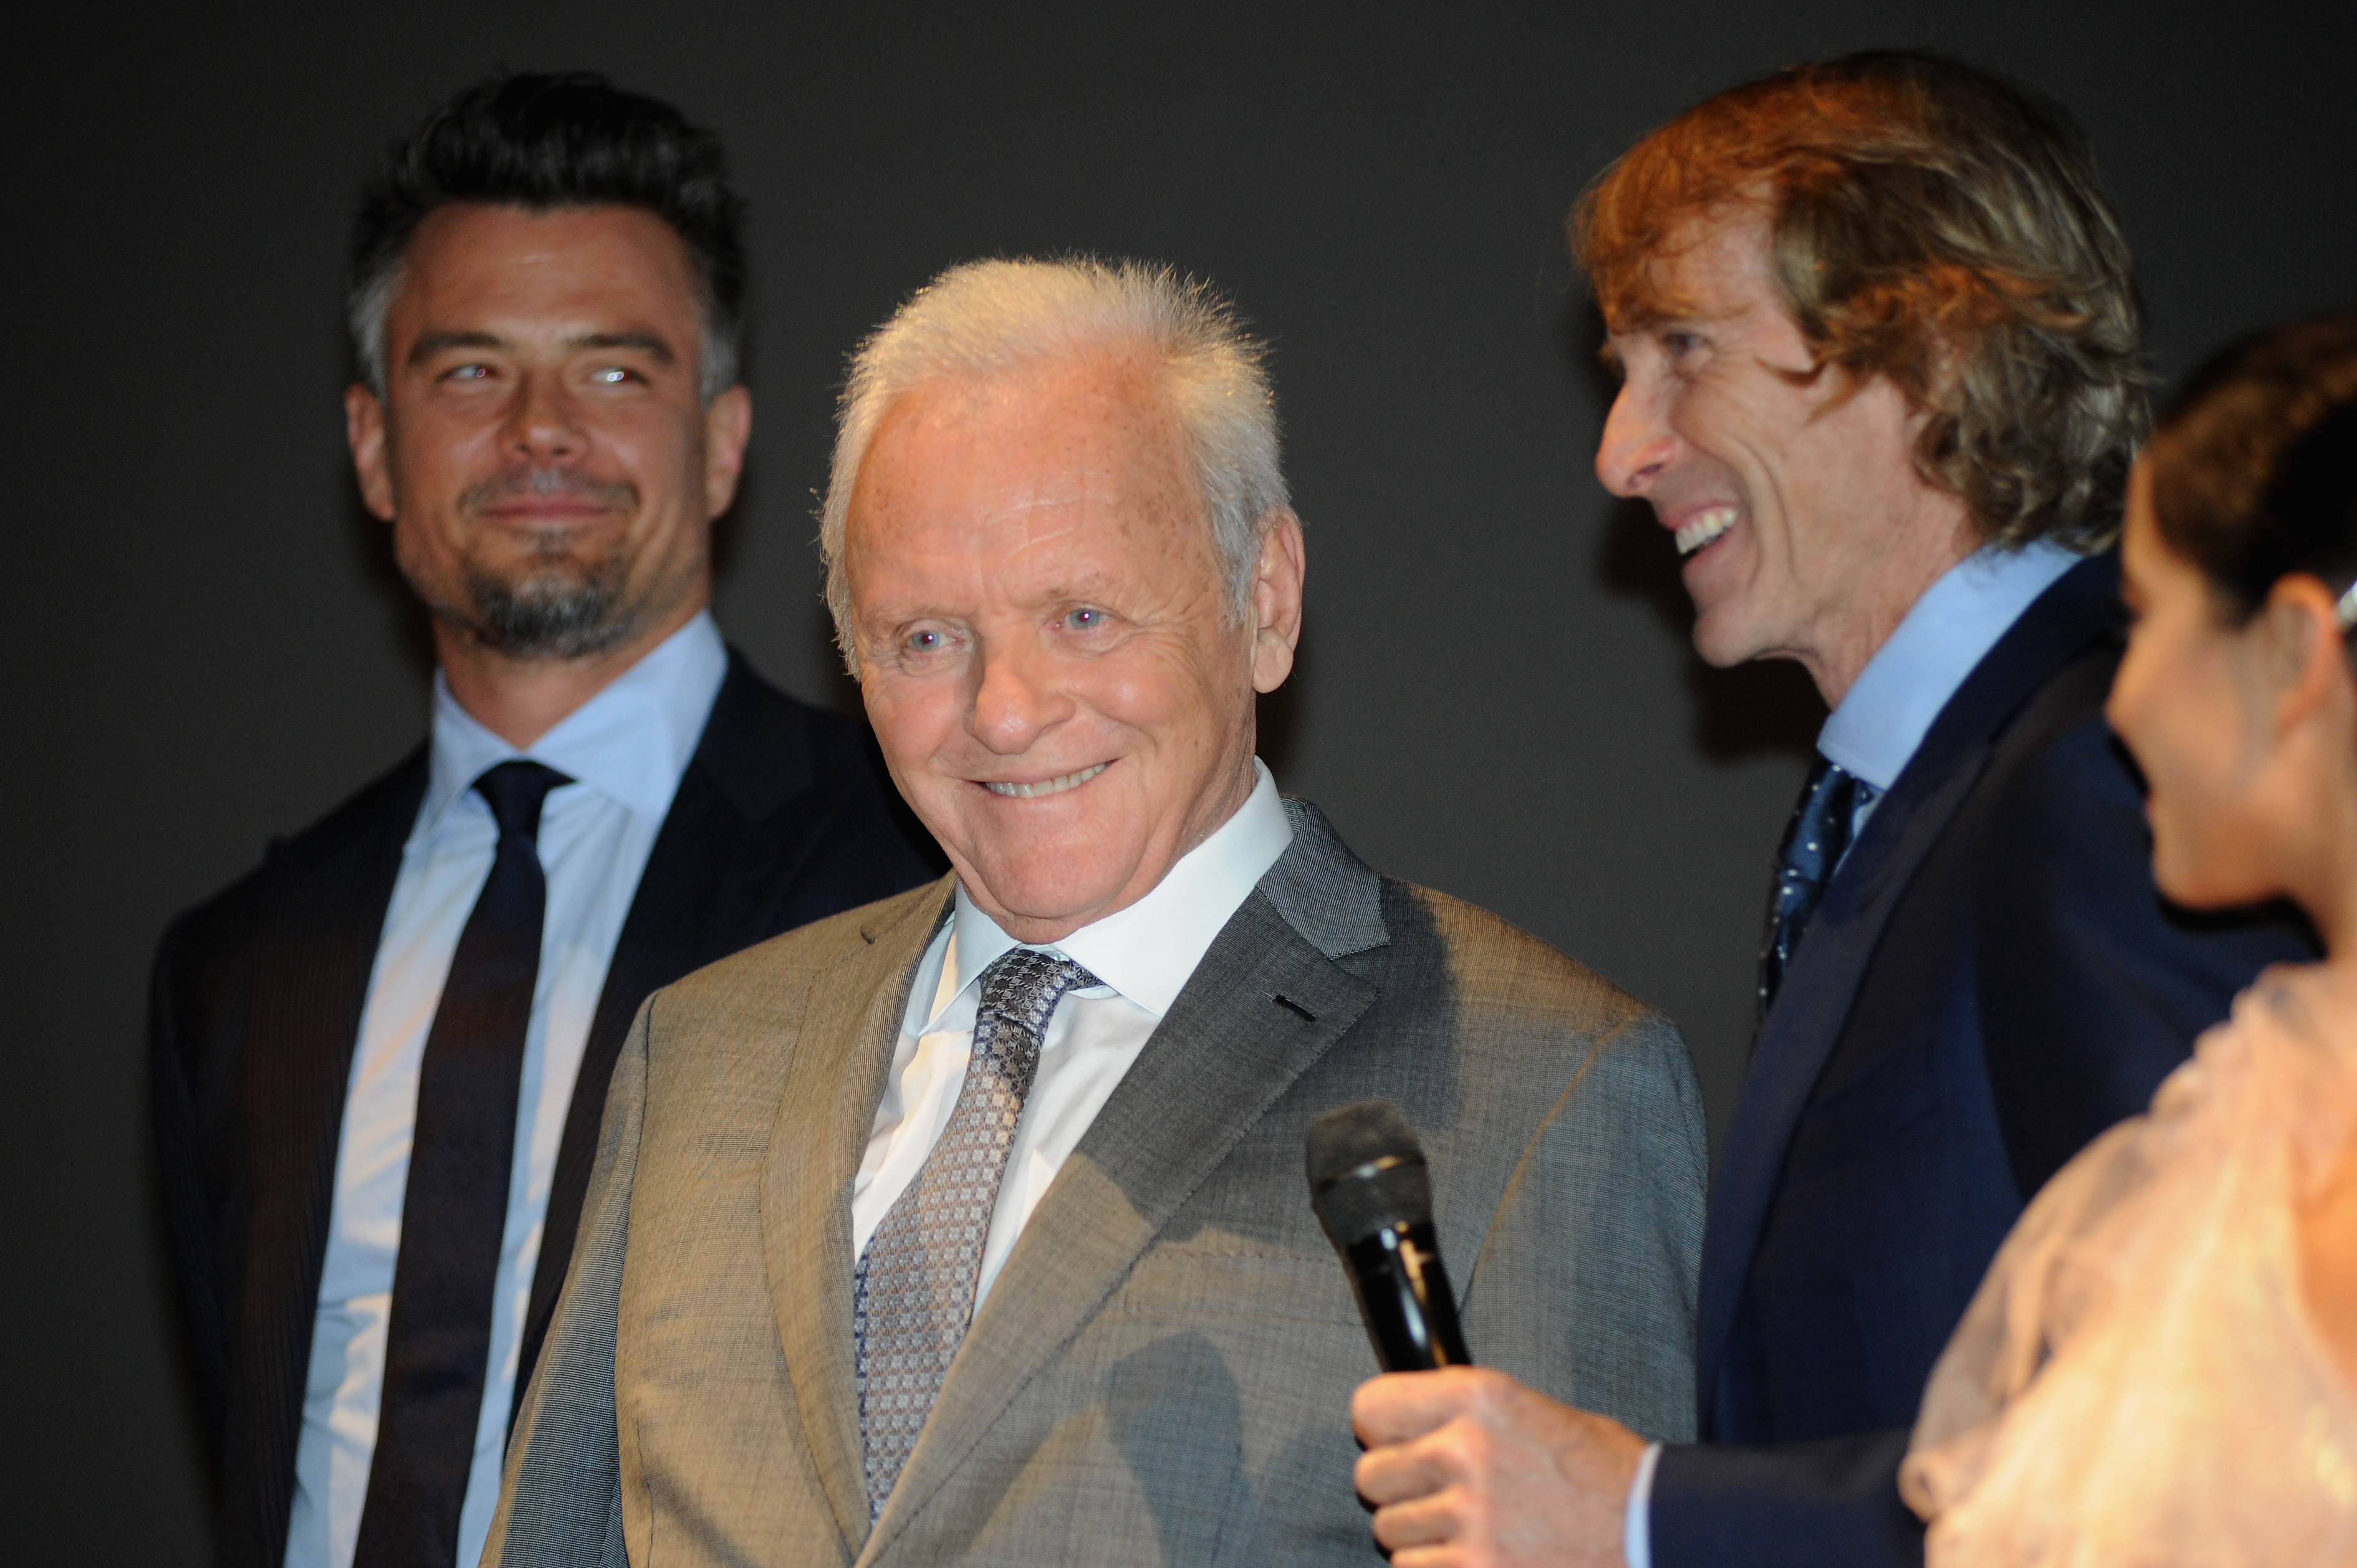 CHICAGO, IL - JUNE 20:  (L-R) Josh Duhamel, Sir Anthony Hopkins, Michael Bay, and Isabela Moner speak onstage at the US premiere of  Transformers: The Last Knight  at the Civic Opera House on June 20, 2017 in Chicago, Illinois.  (Photo by Timothy Hiatt/Getty Images for Paramount Pictures)